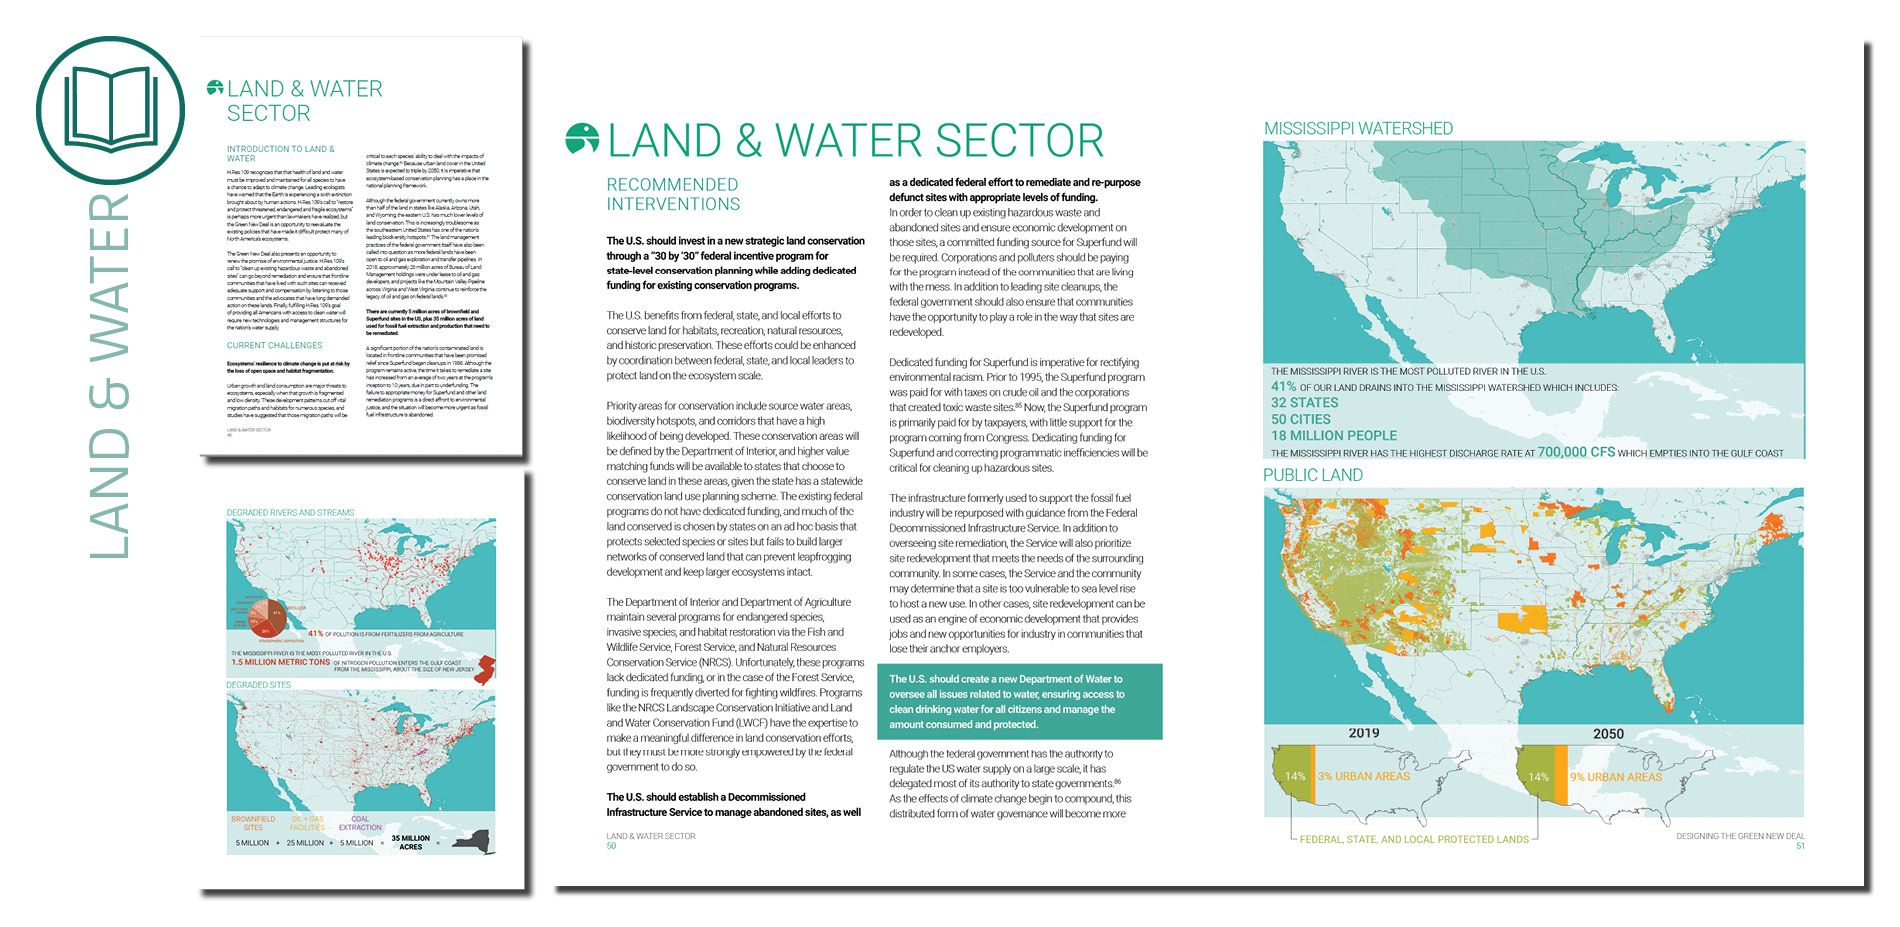 Report: Water and Land Sector